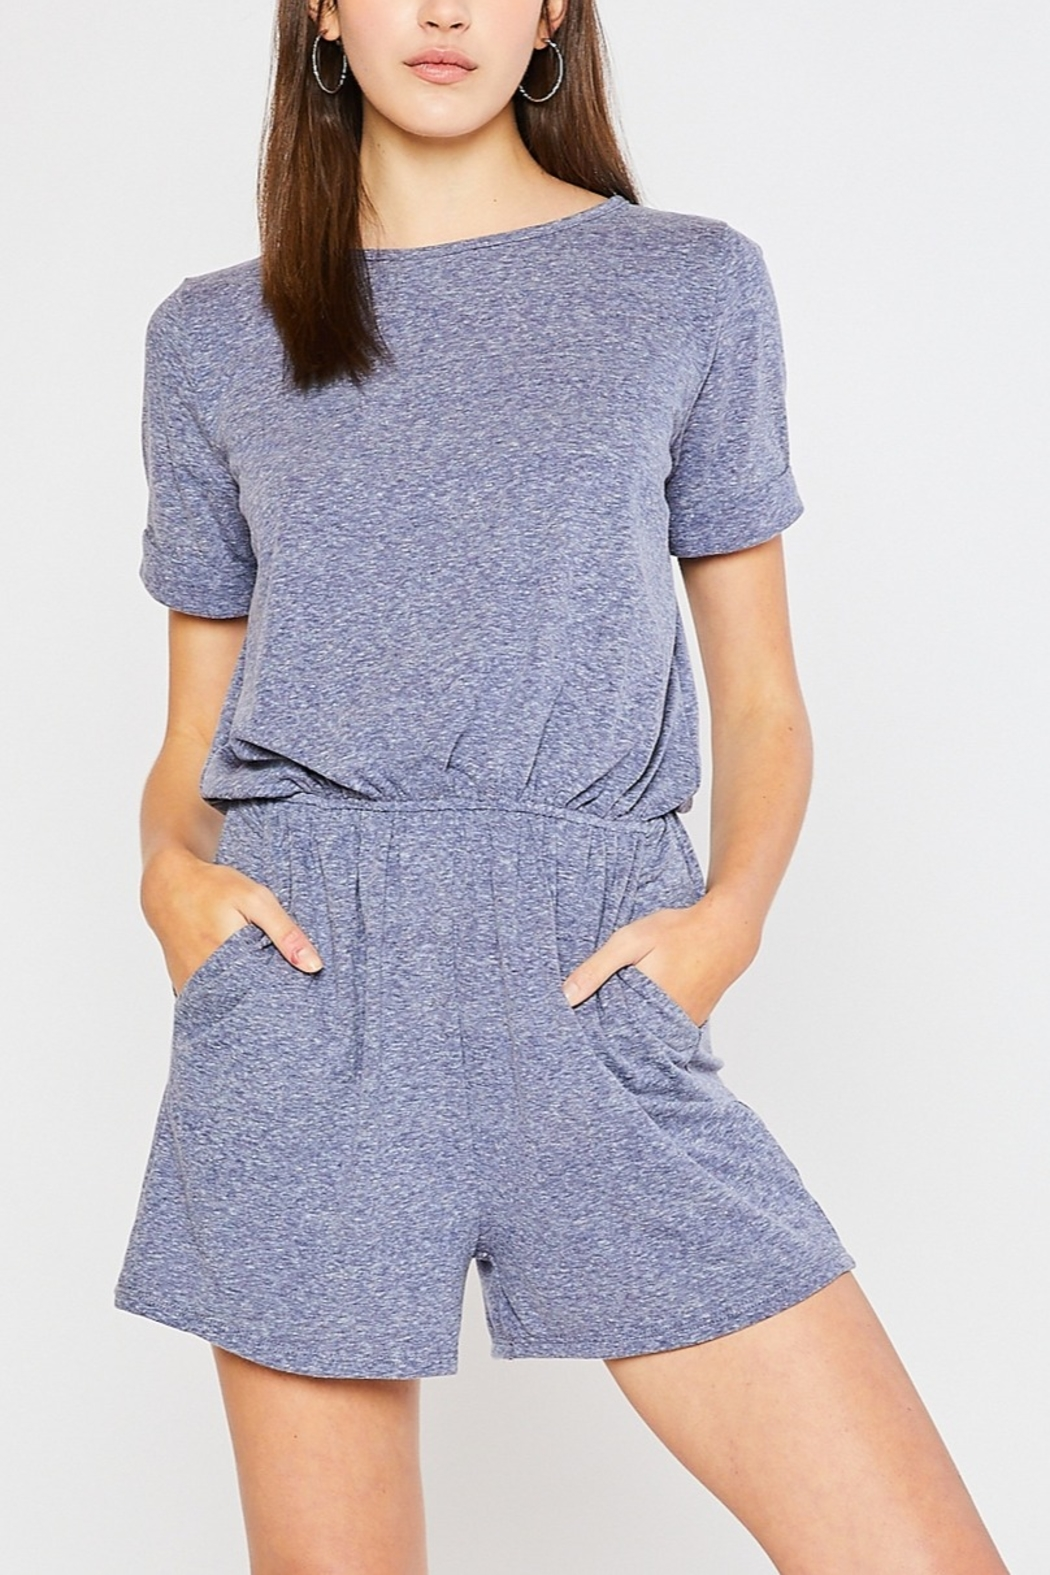 Lyn -Maree's Tri Blend Knit Romper - Front Cropped Image